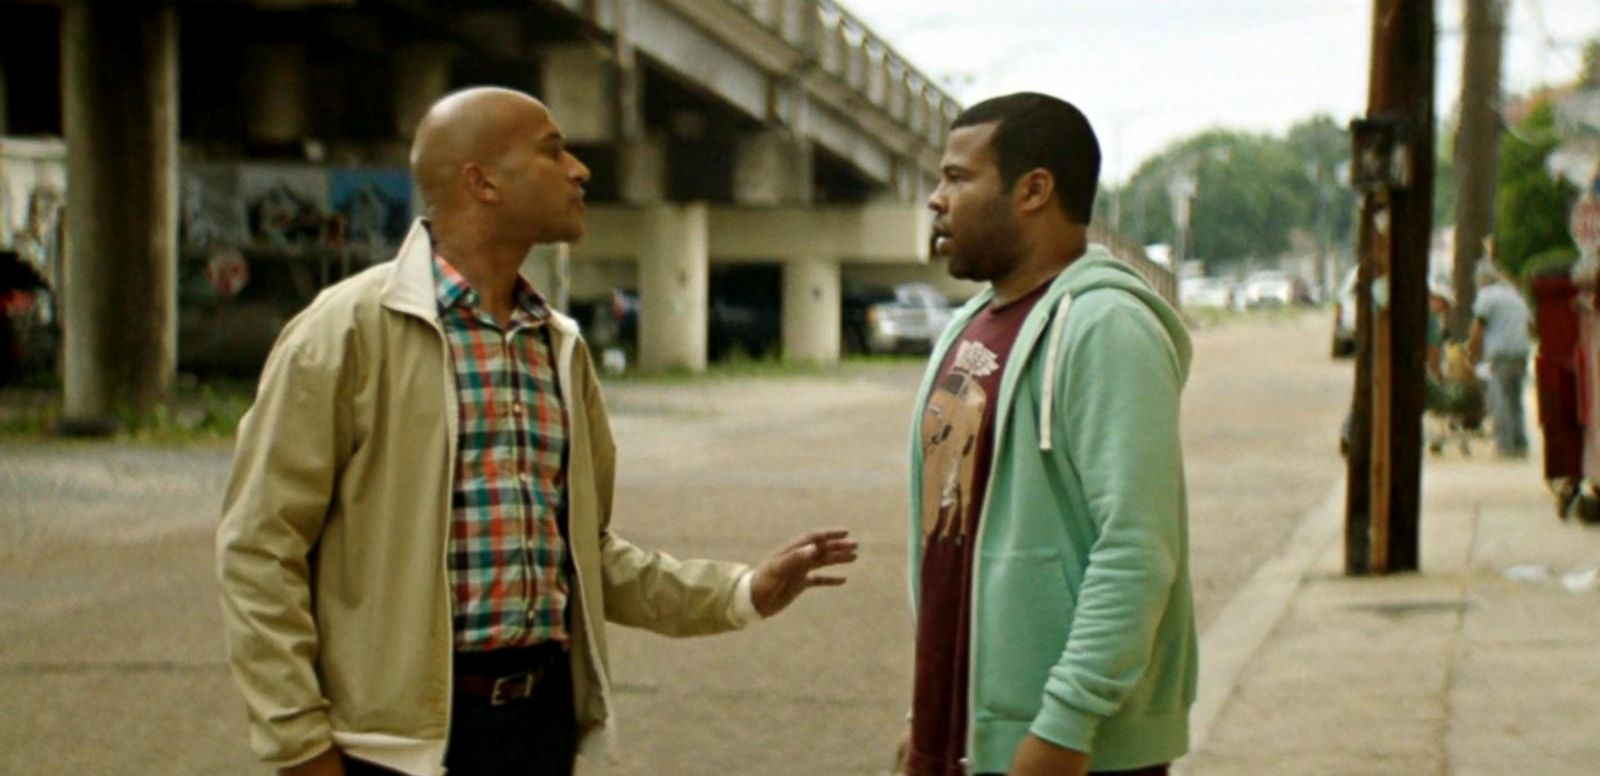 Comedy duo Key and Peele play two cousins who are on the hunt for a kitten that's been catnapped.